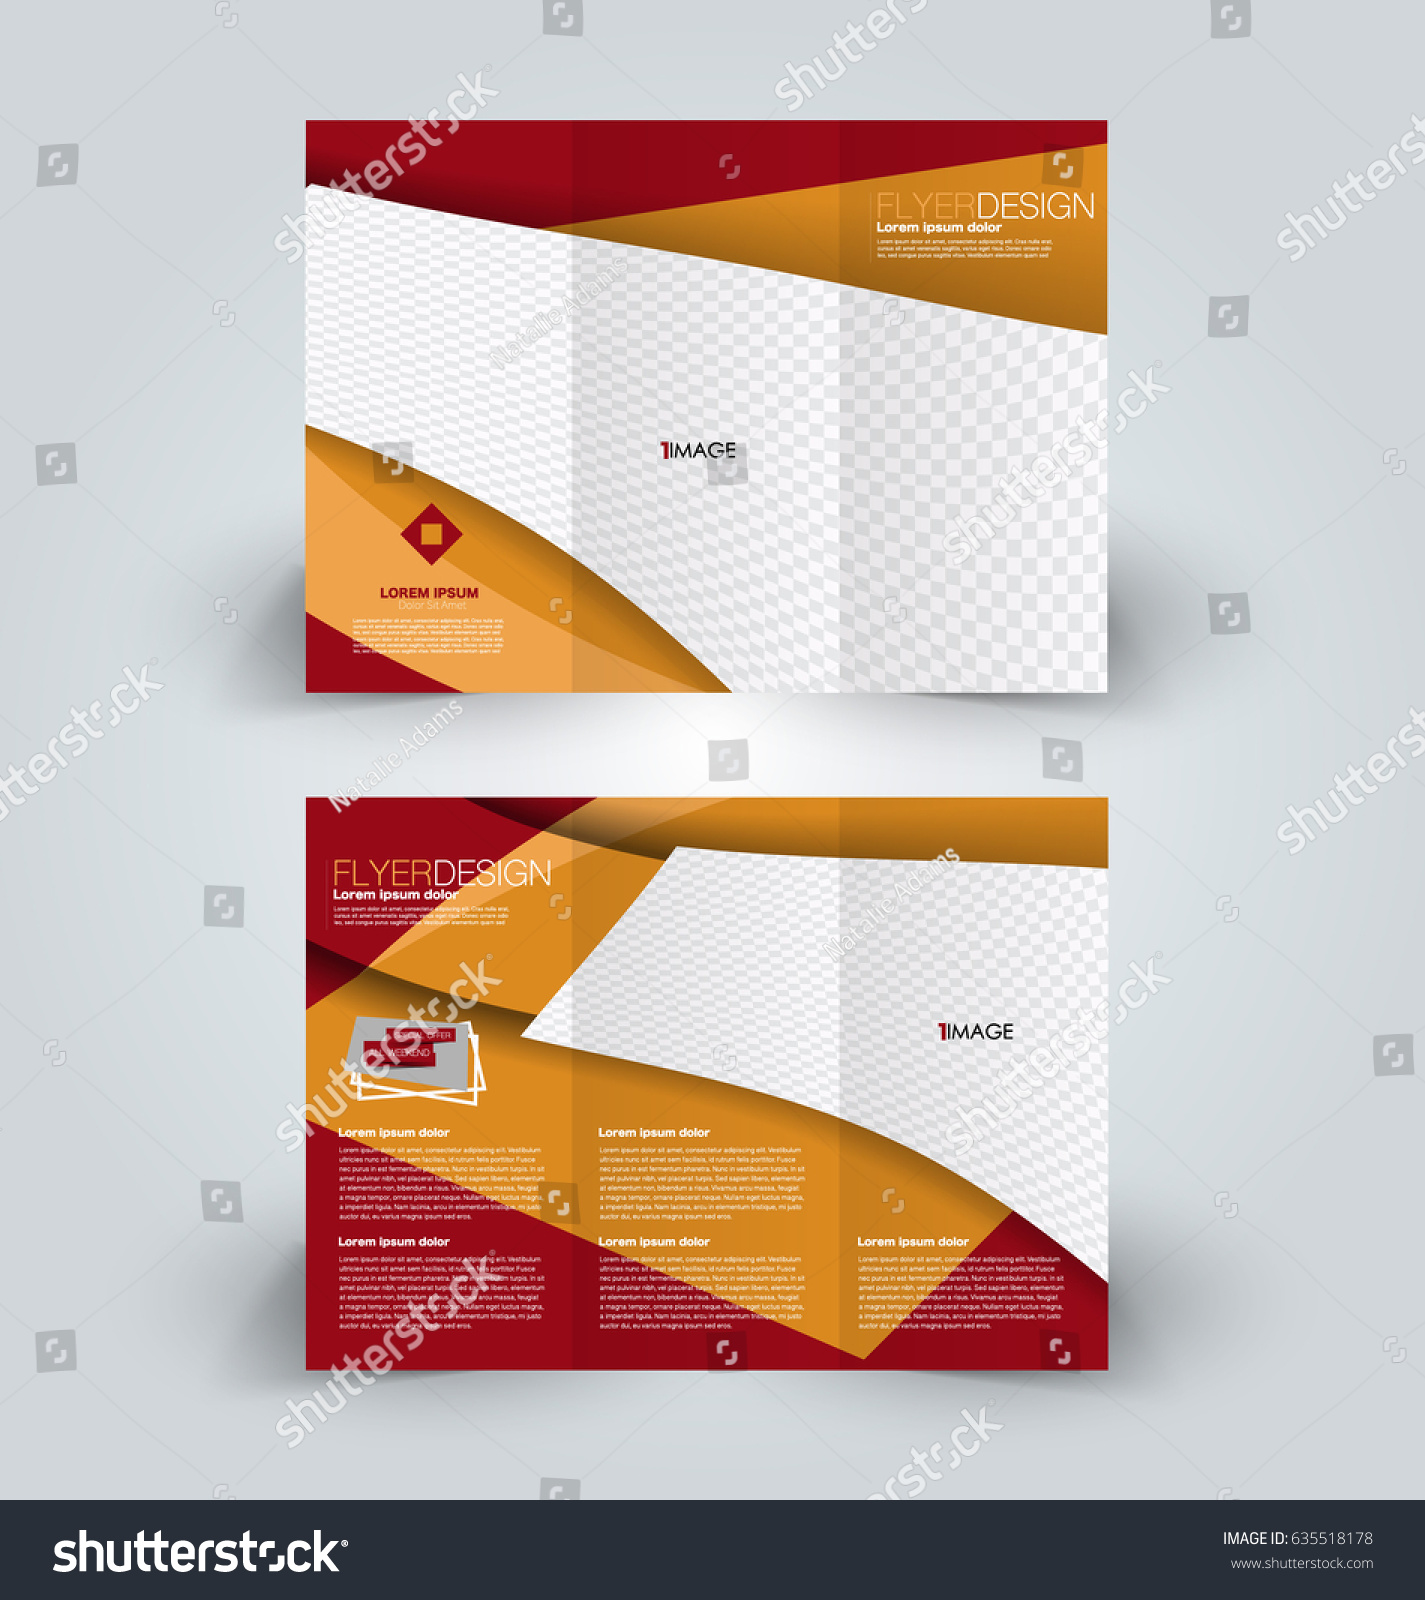 Brochure Template Business Trifold Flyer Creative Stock Vector - Business tri fold brochure templates